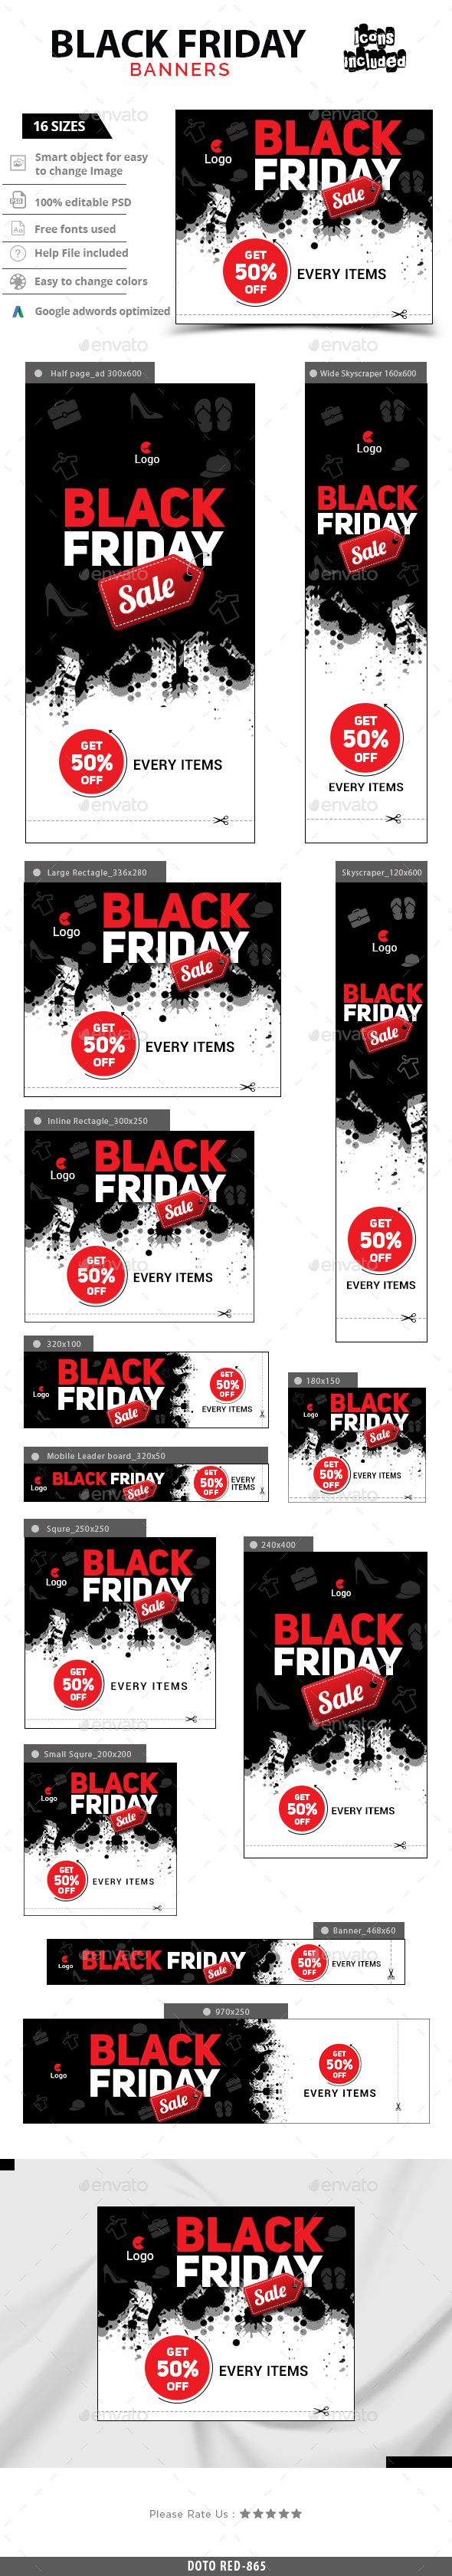 Black Friday Web Banners Template PSD #design #ads Download: http://graphicriver.net/item/black-friday-banners/13737601?ref=ksioks